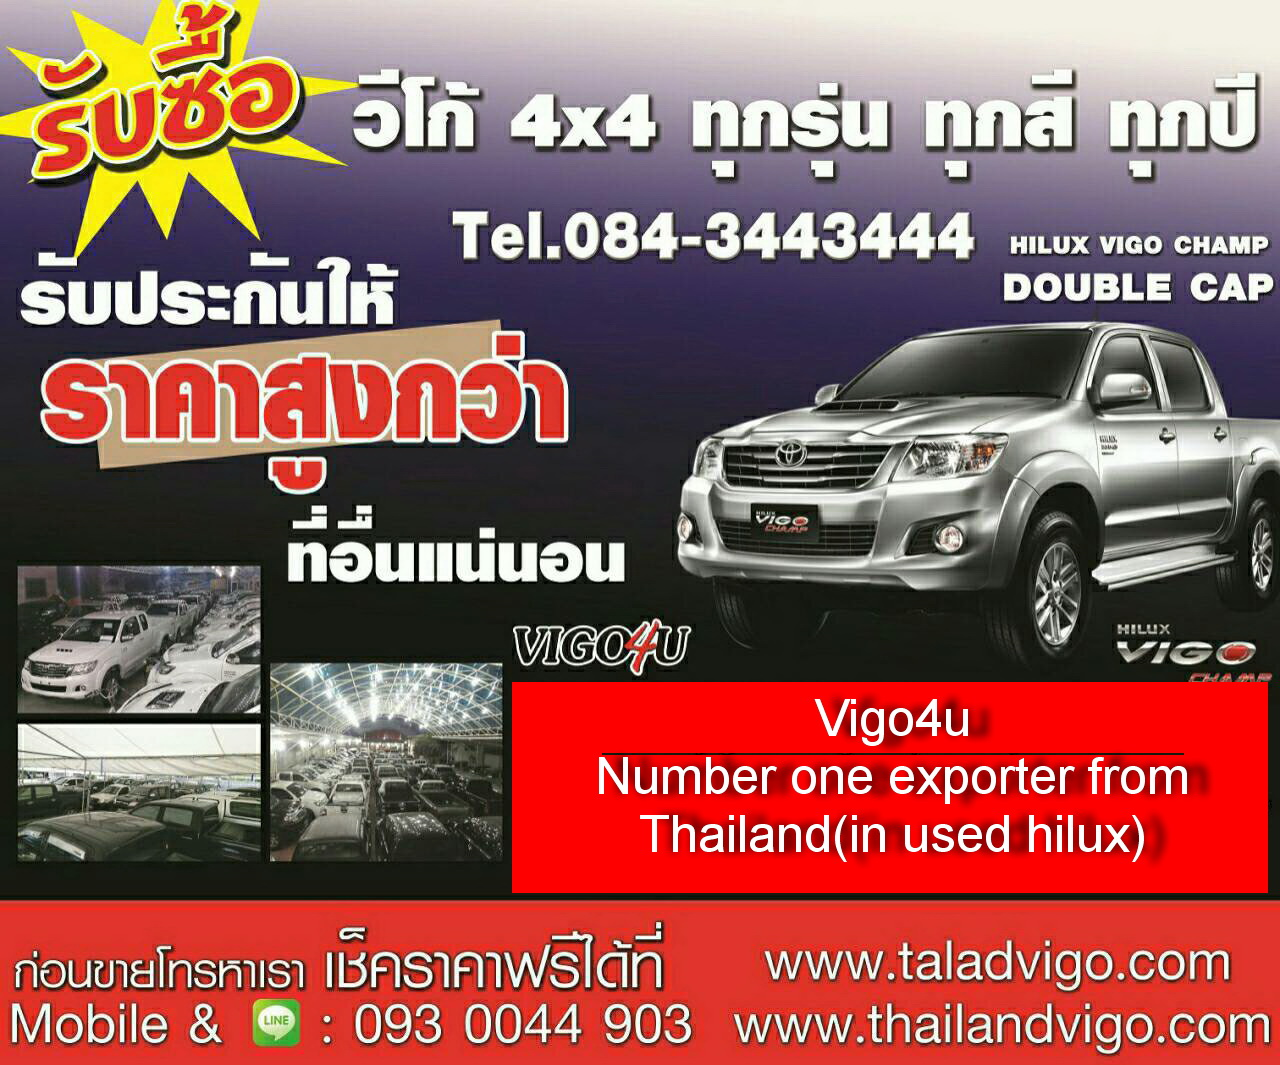 Want to sell your Toyota Vigo Champ? (4x4 Only)